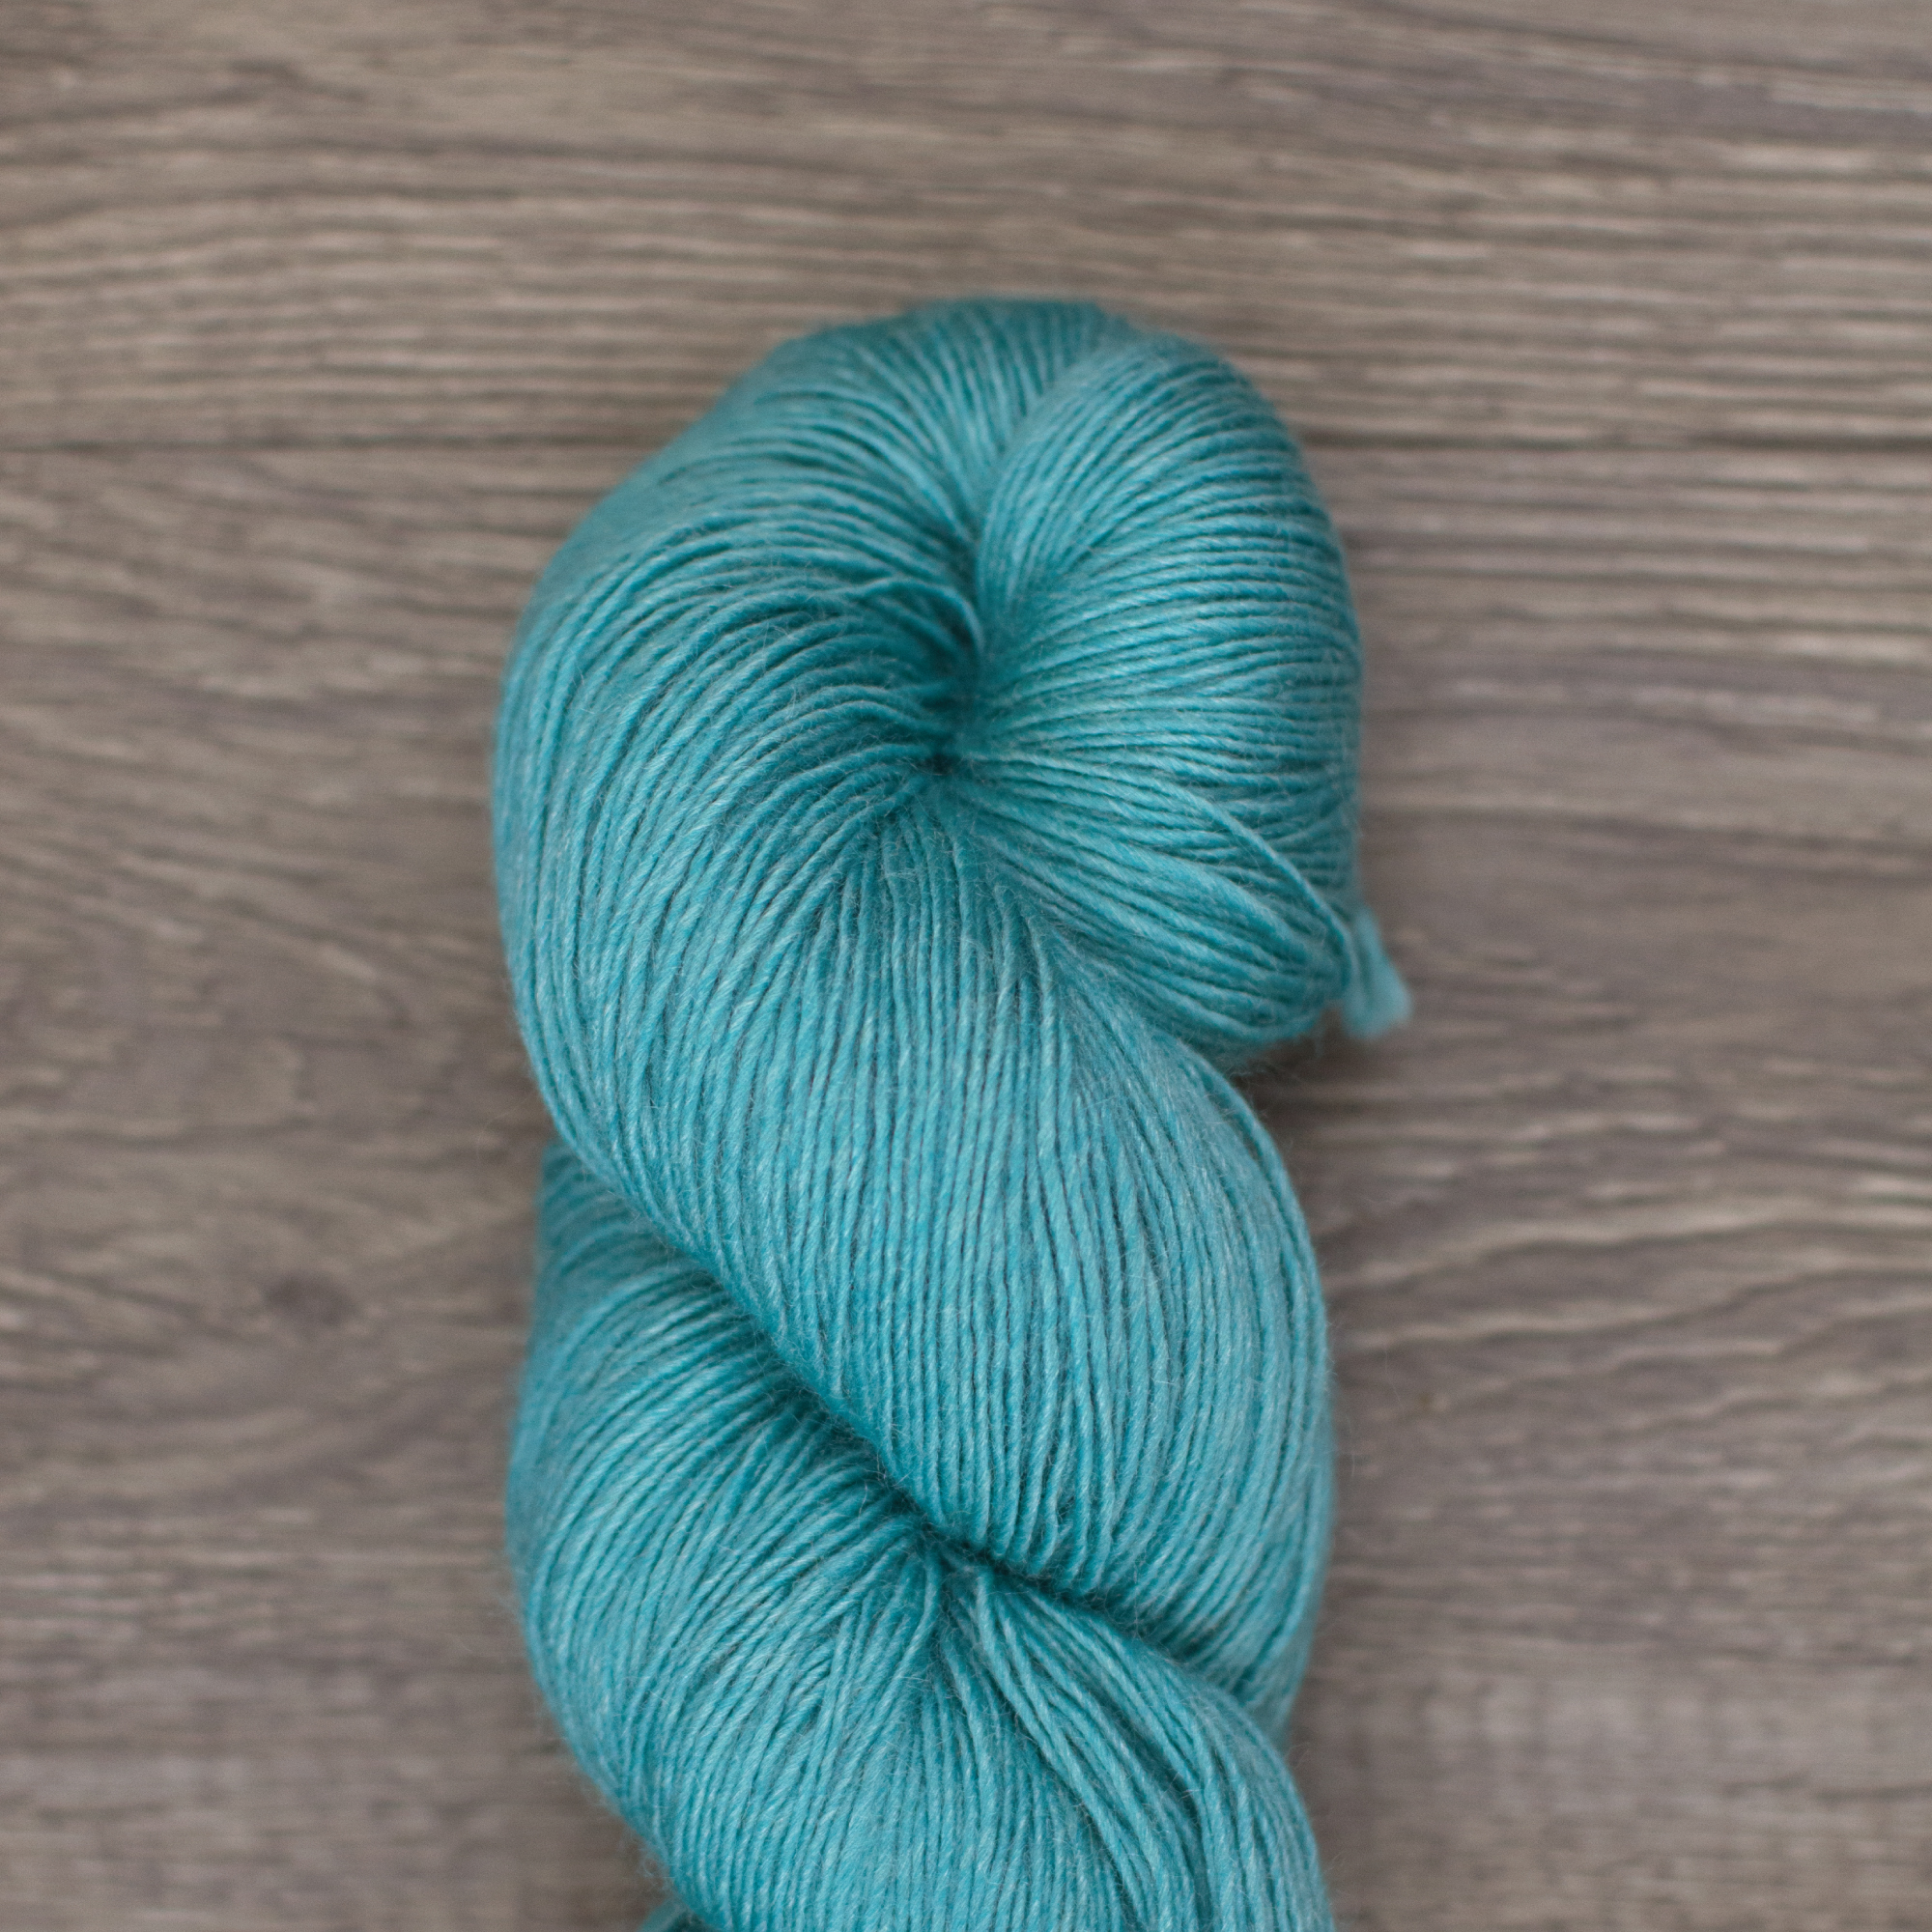 FILO by Cloud9 Fibers — 900030 | BEACH DAY